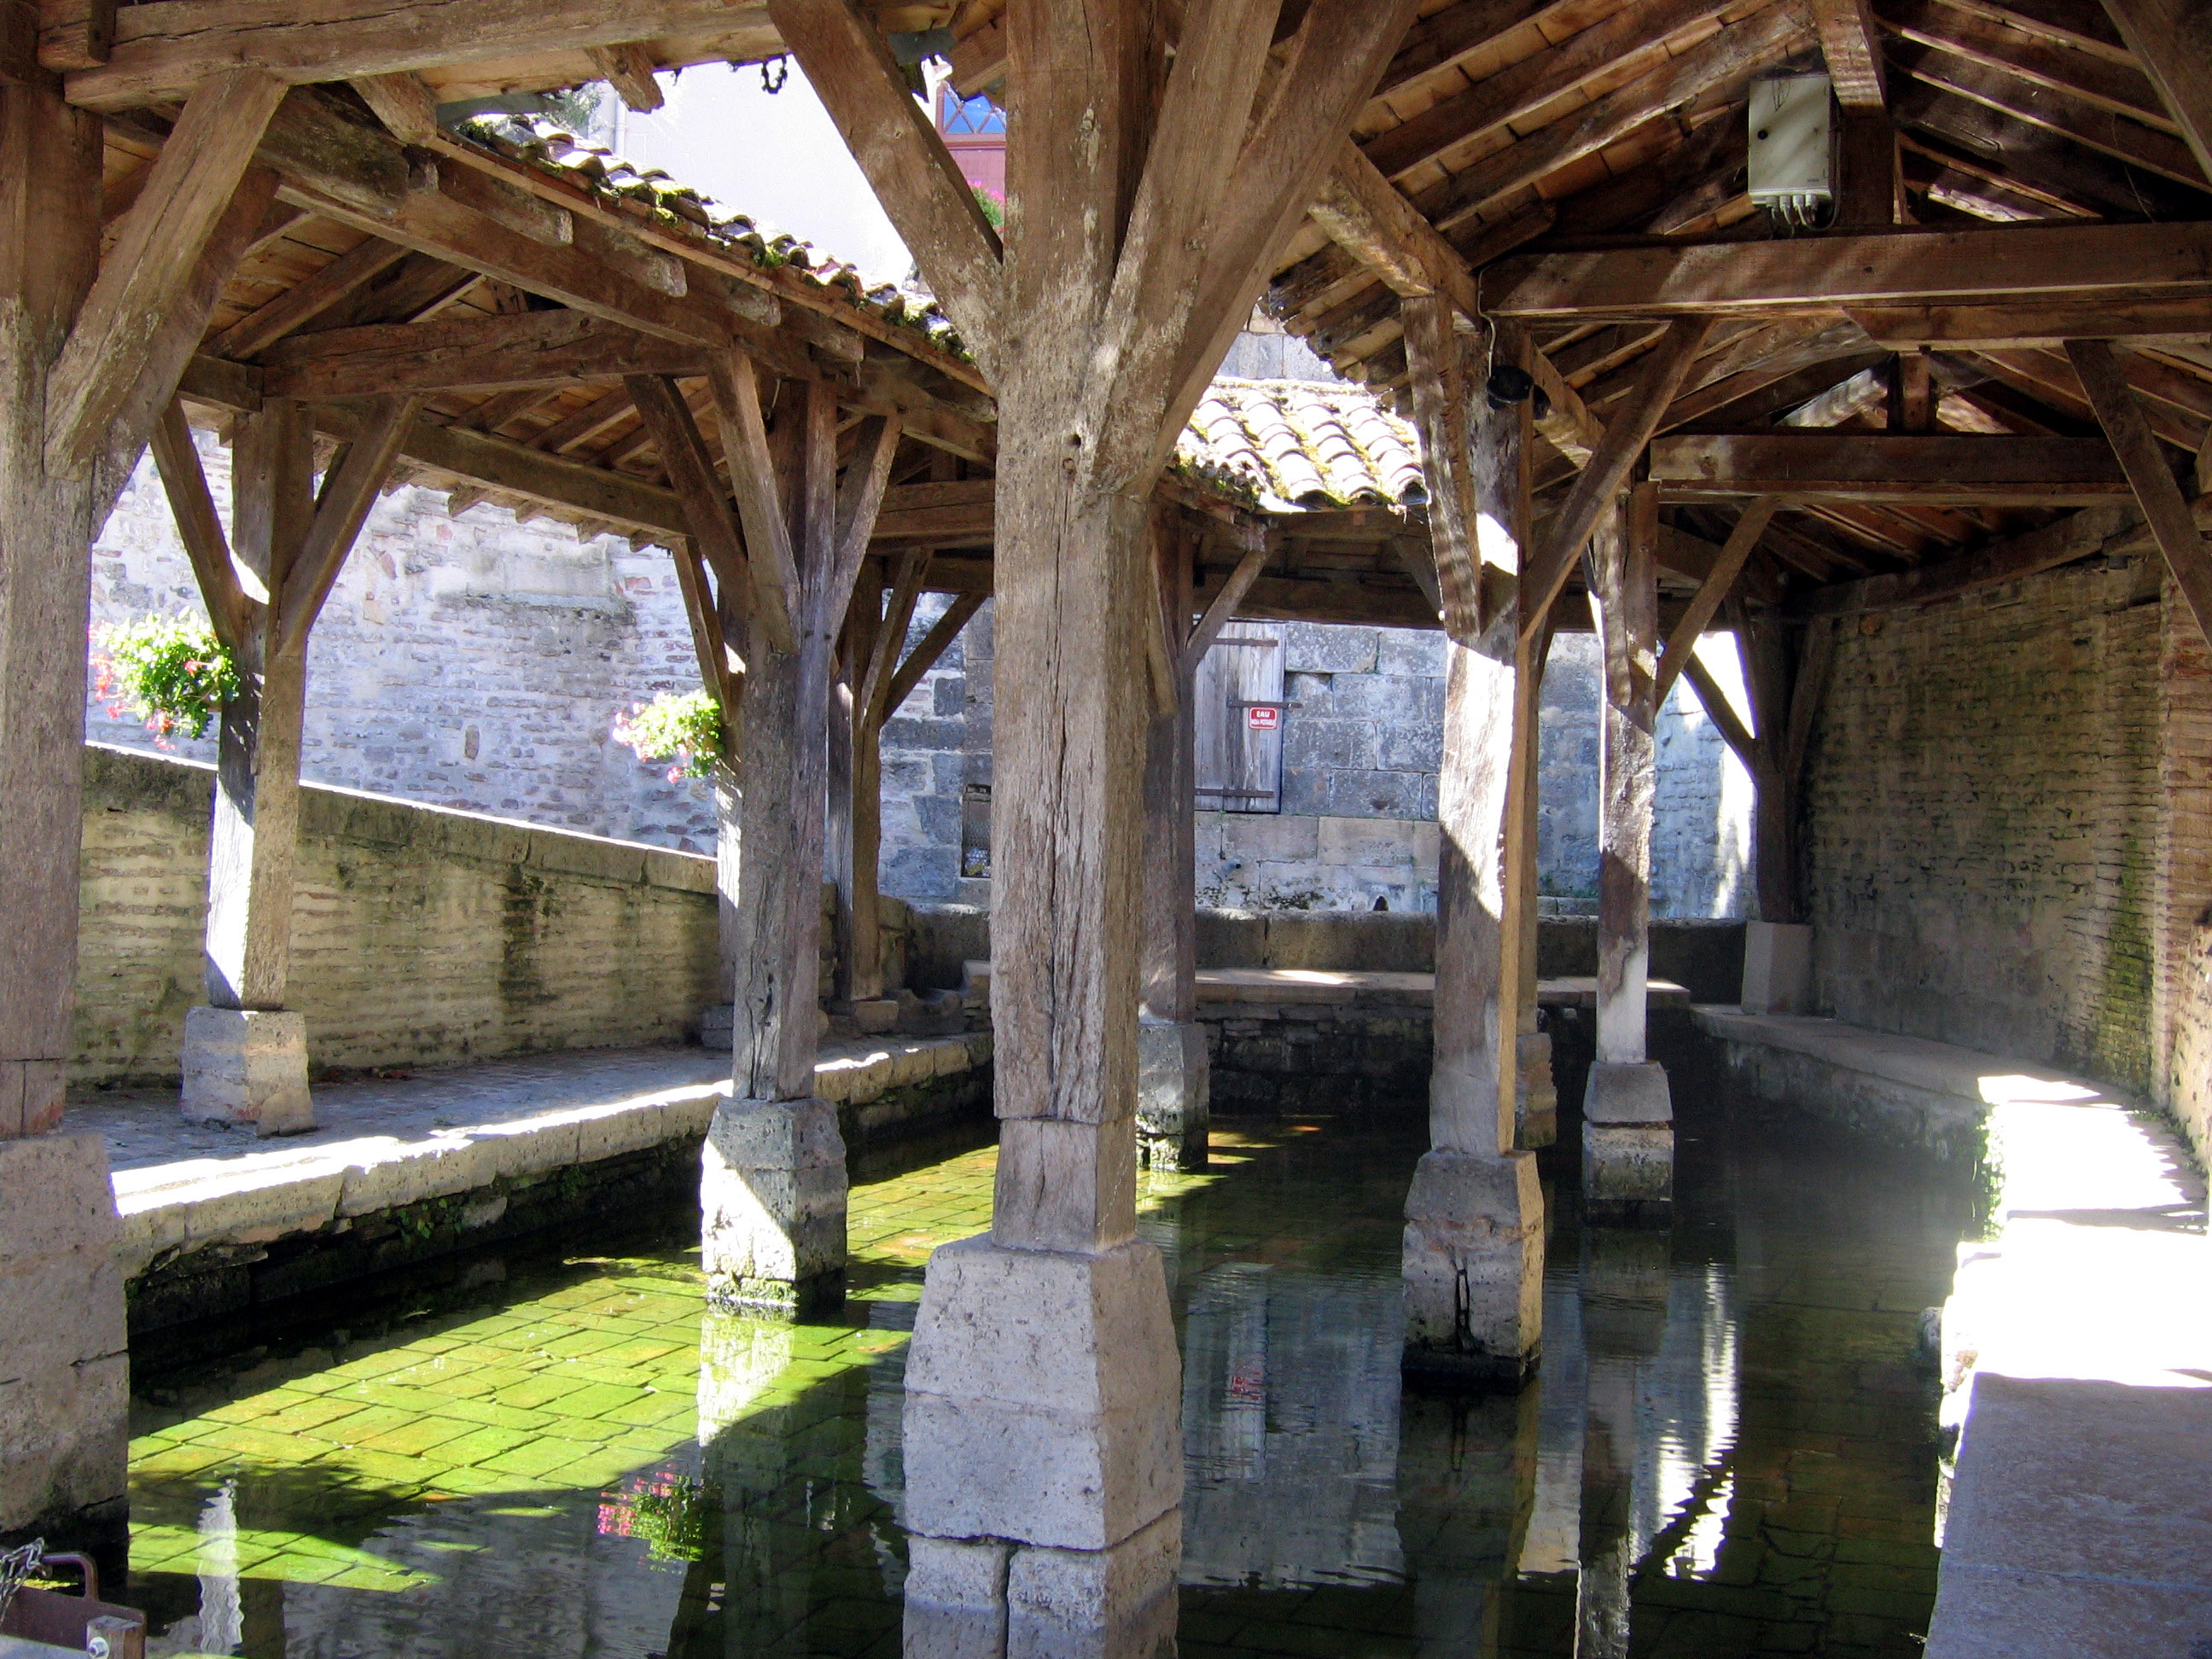 https://upload.wikimedia.org/wikipedia/commons/c/c1/Lavoir_du_Mas-d%27Agenais%2C_int%C3%A9rieur.JPG